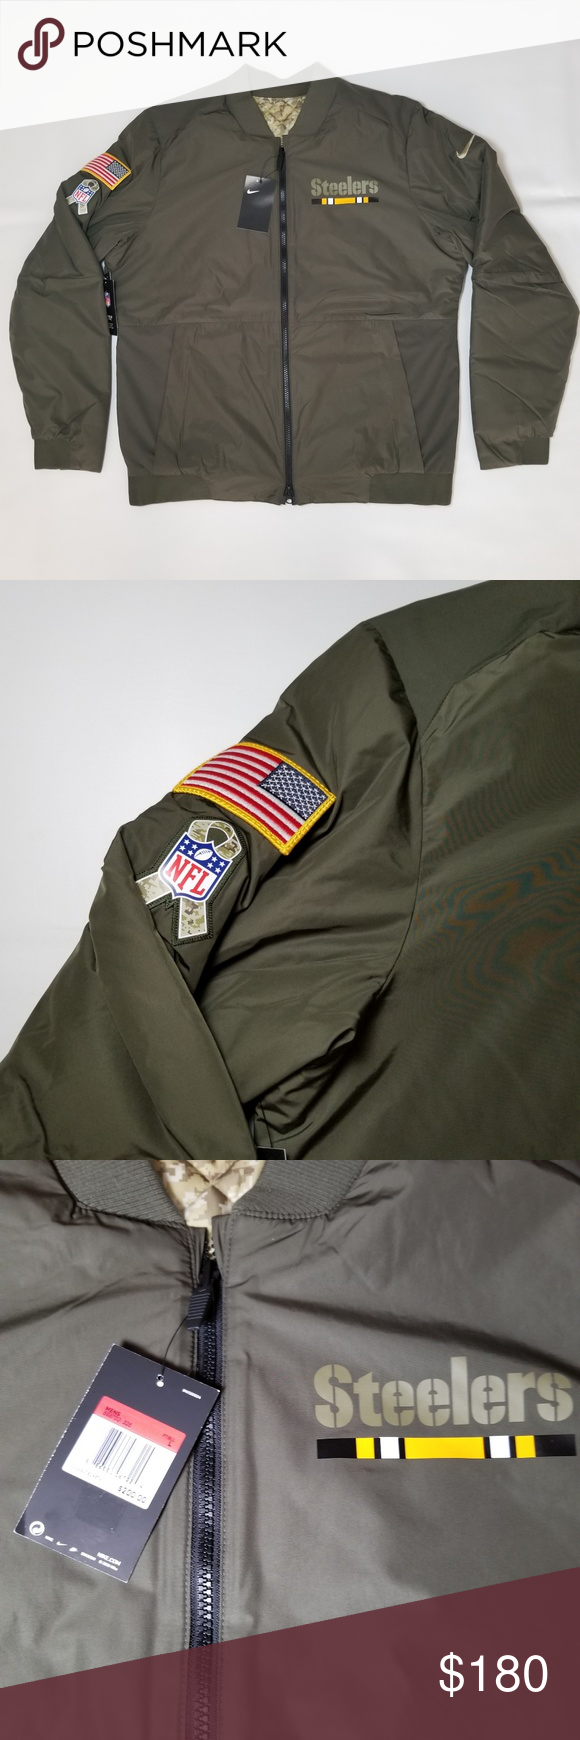 fbe15b0d43f Pittsburgh Steelers Nike Men's Bomber Jacket SZ L Pittsburgh Steelers Nike Men's  Salute To Service Bomber Jacket Reversible Two-Sided Jacket!